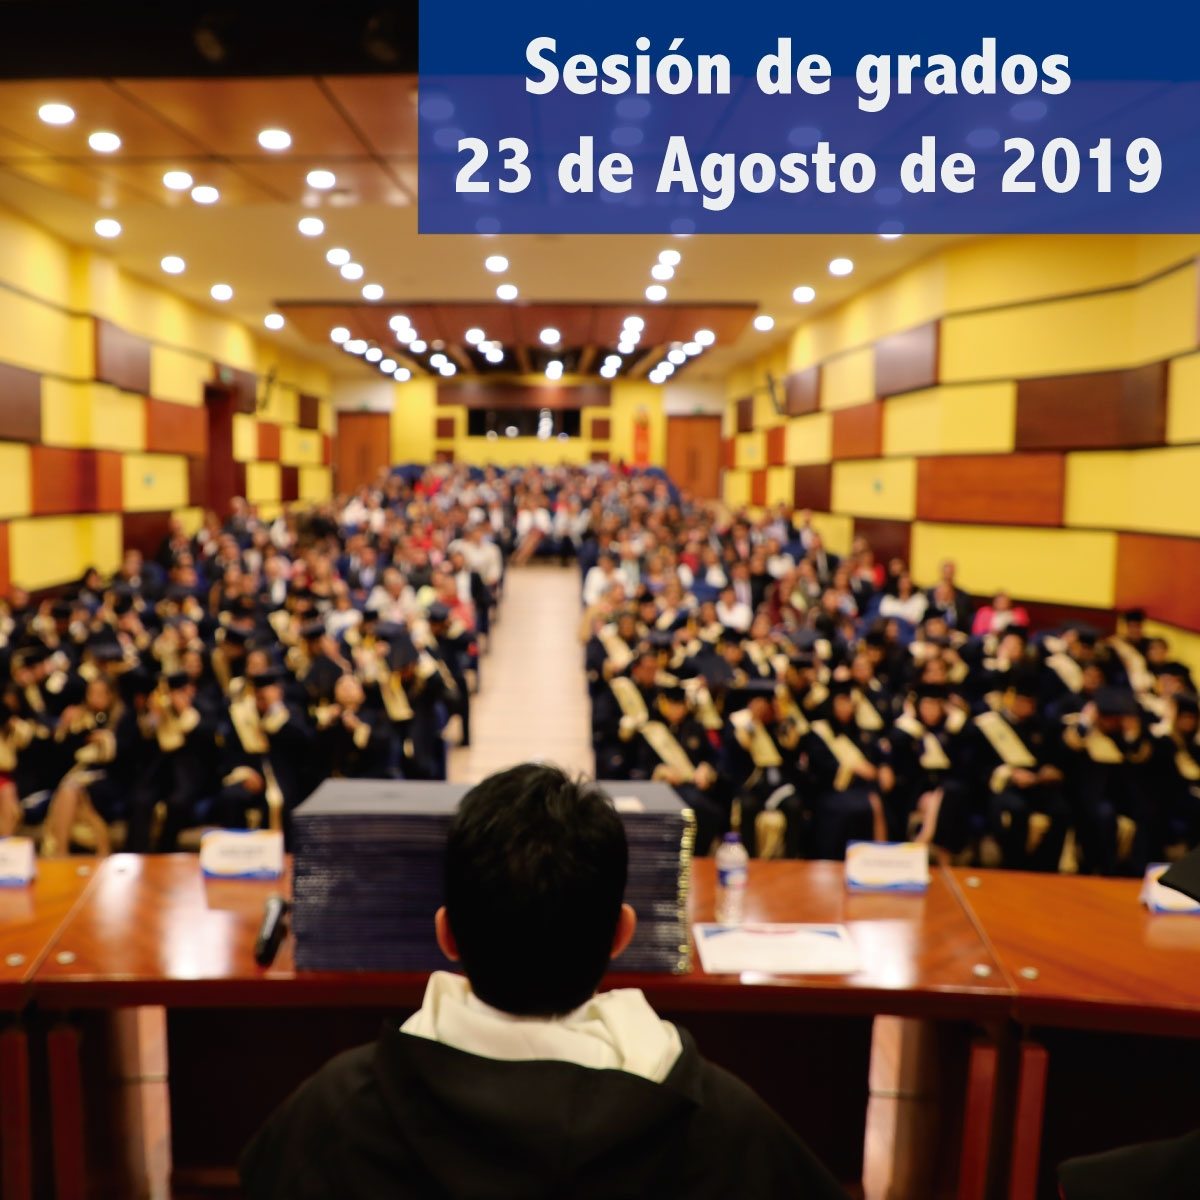 August 23 Grade Session of 2019 - List of Graduates